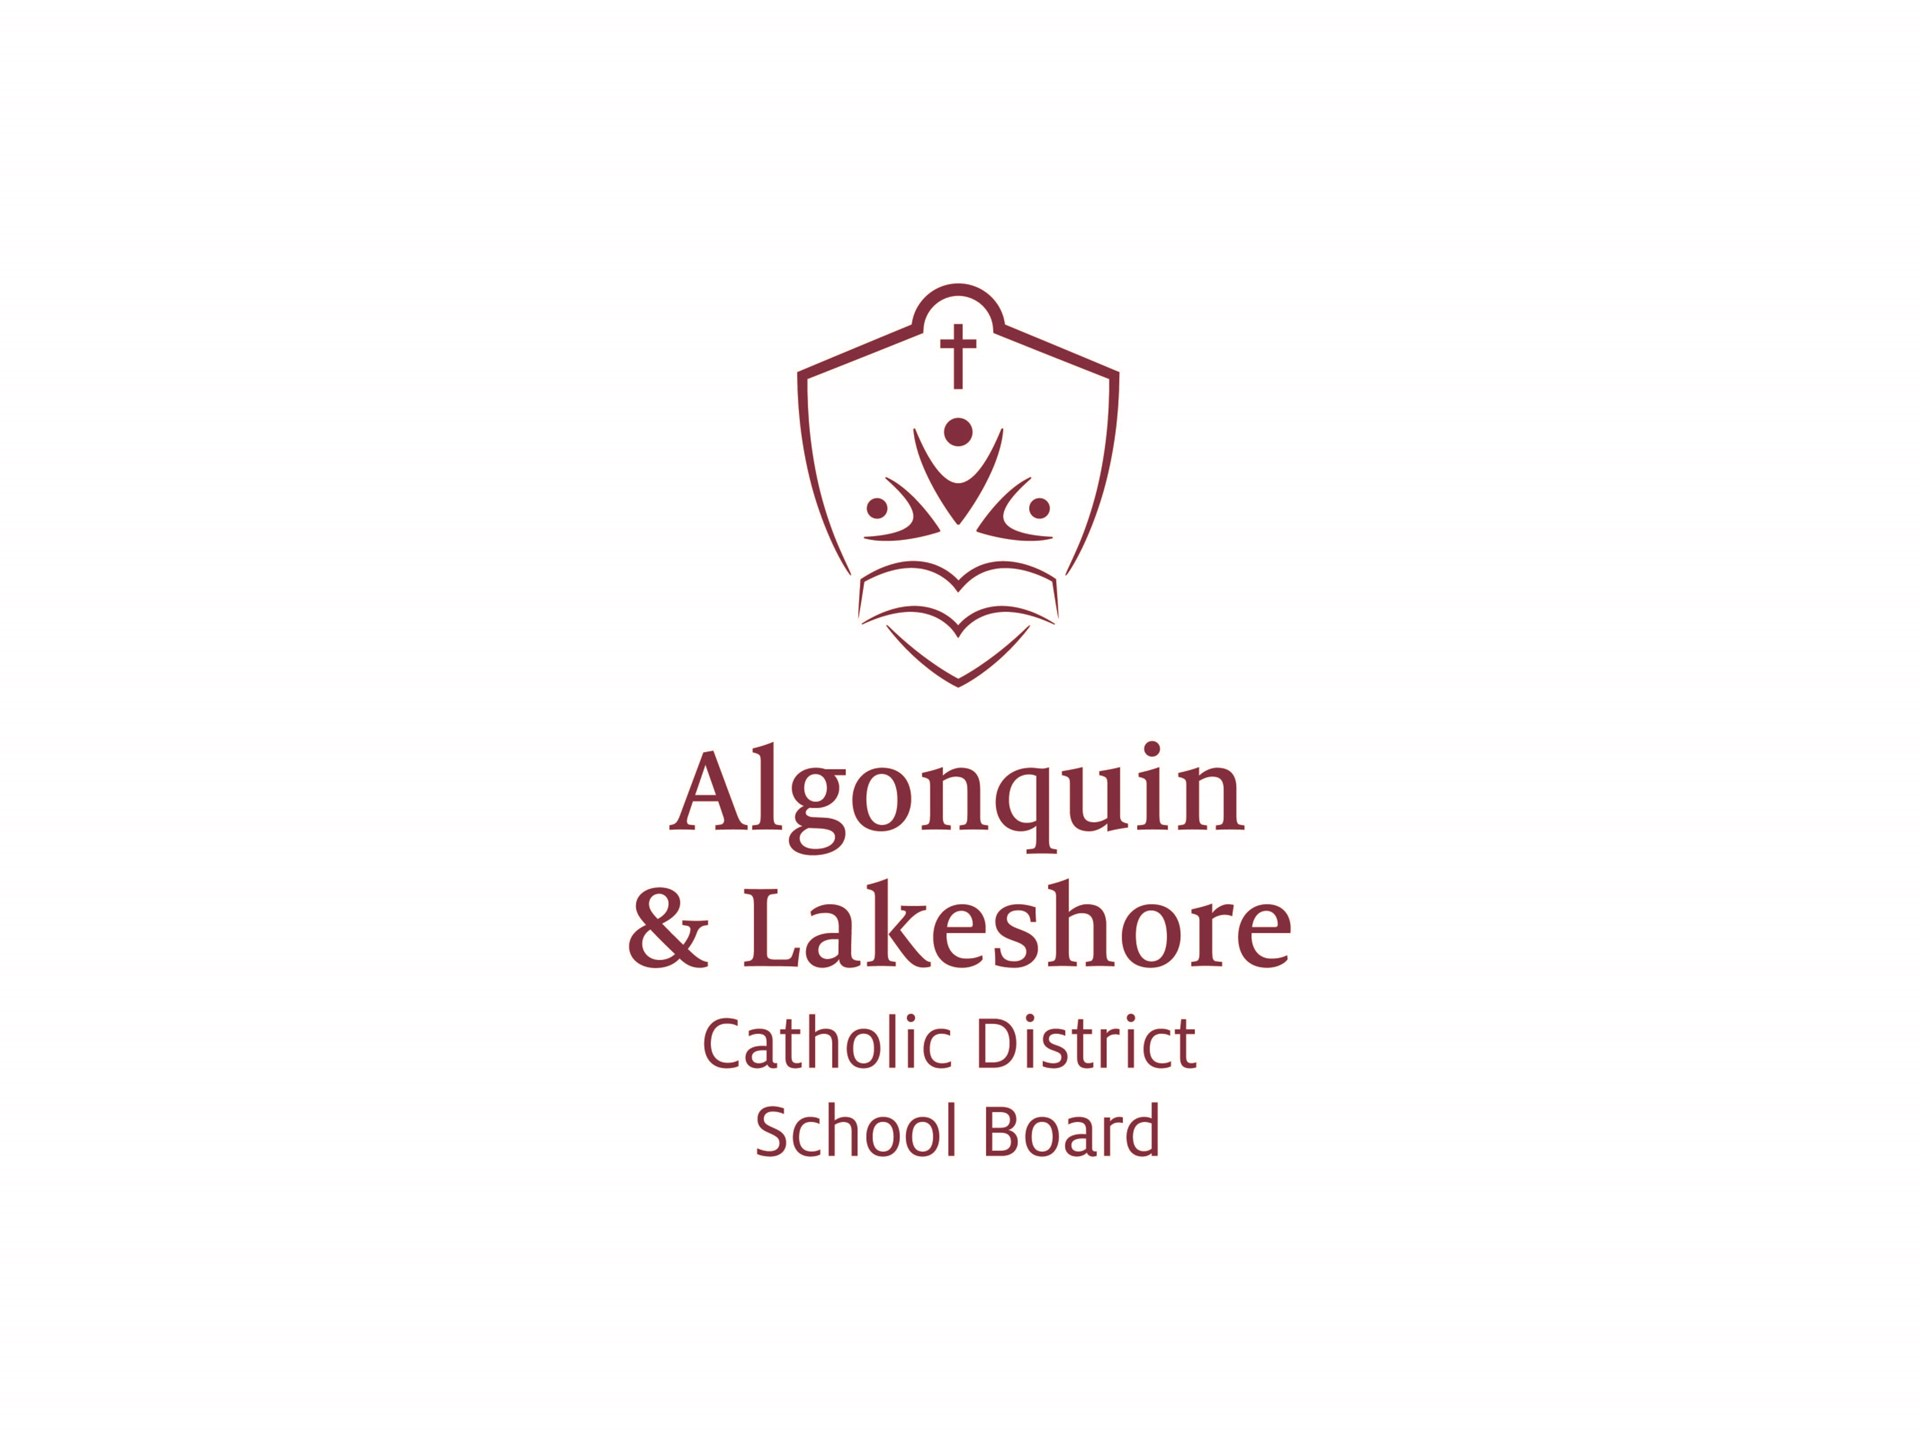 ALCDSB_Burgundy_Centered_Logo.jpg